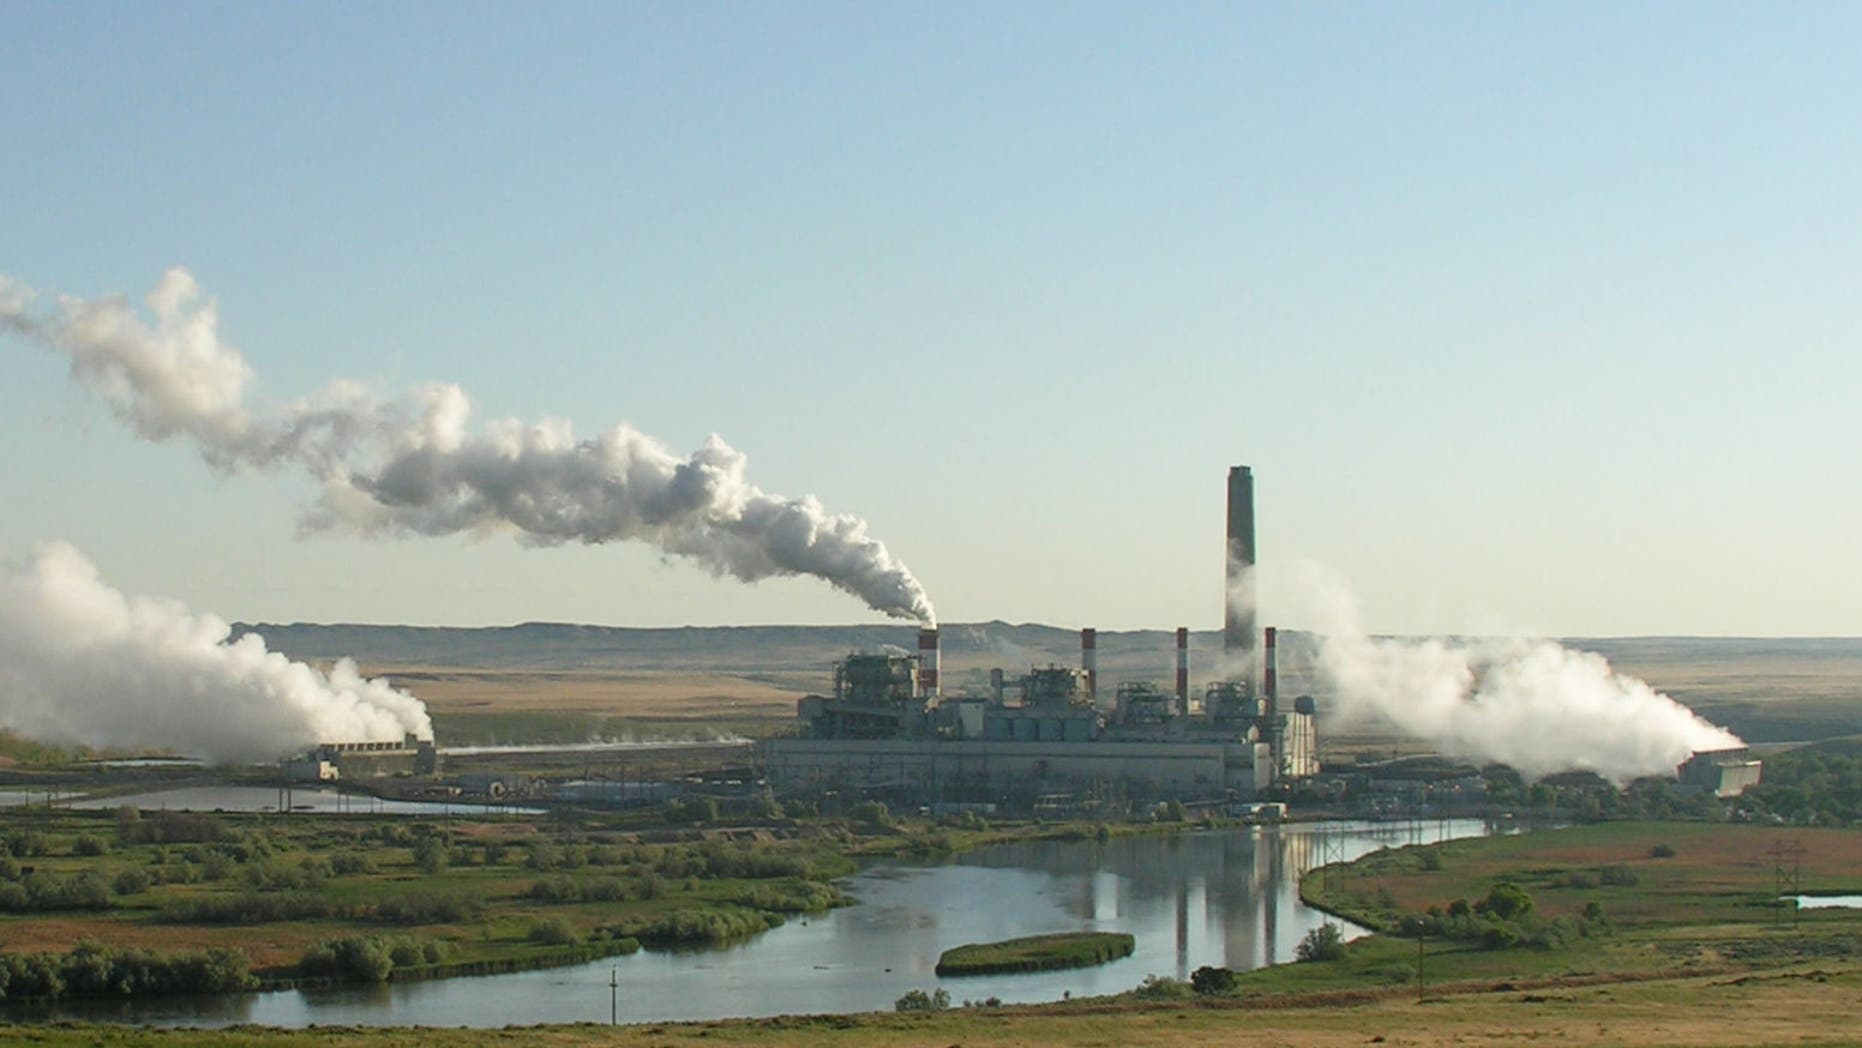 A coal plant is pictured